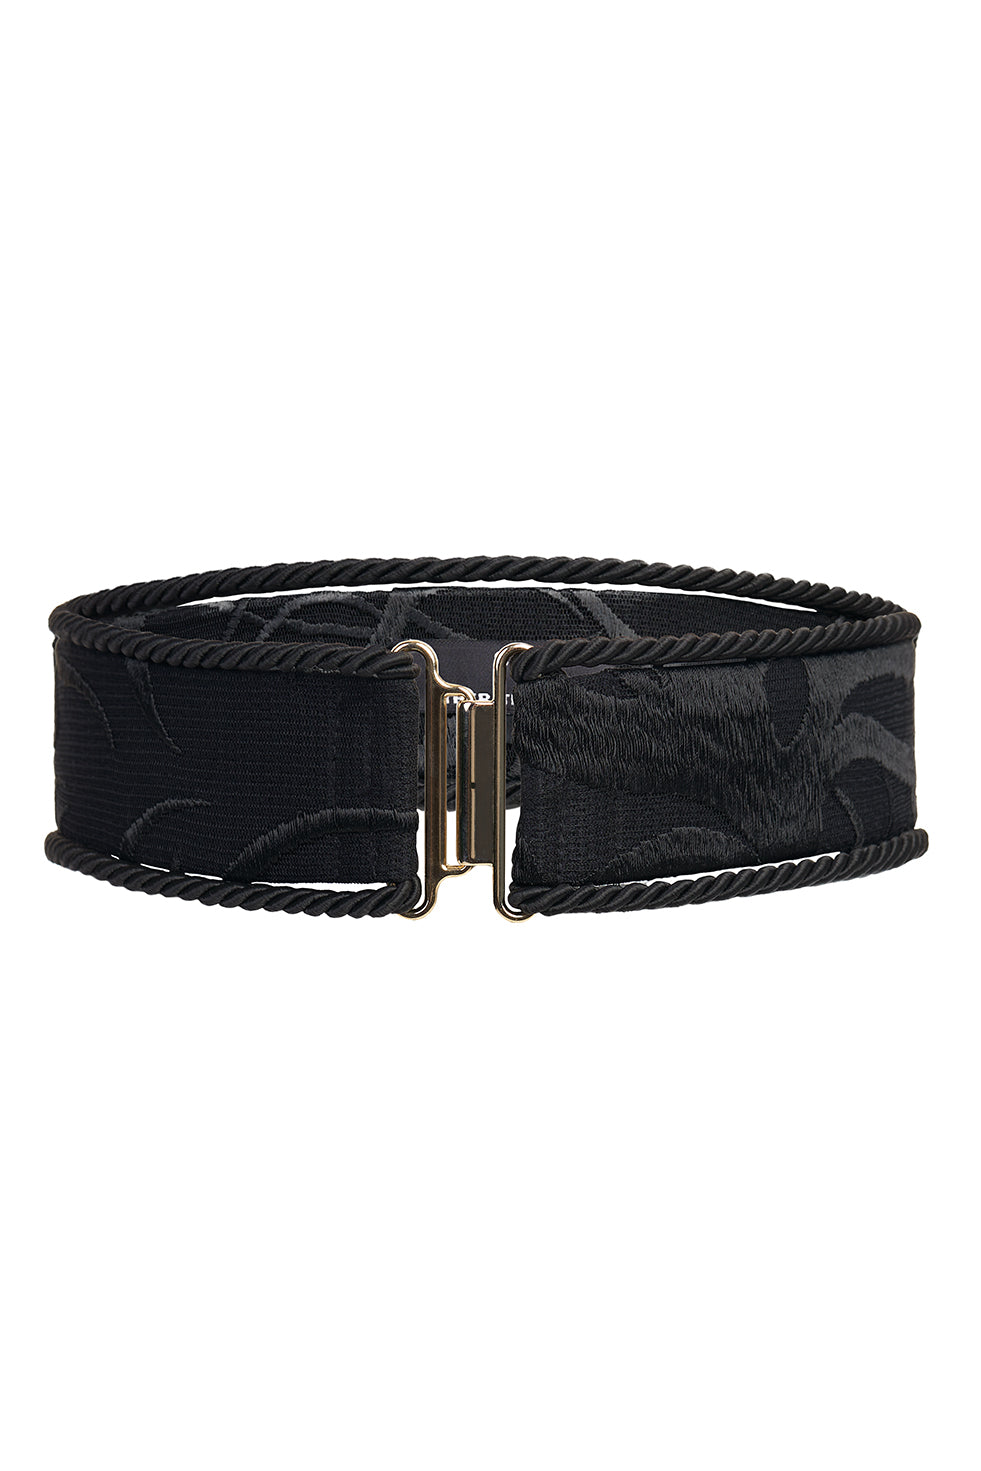 Riley Multi Belt